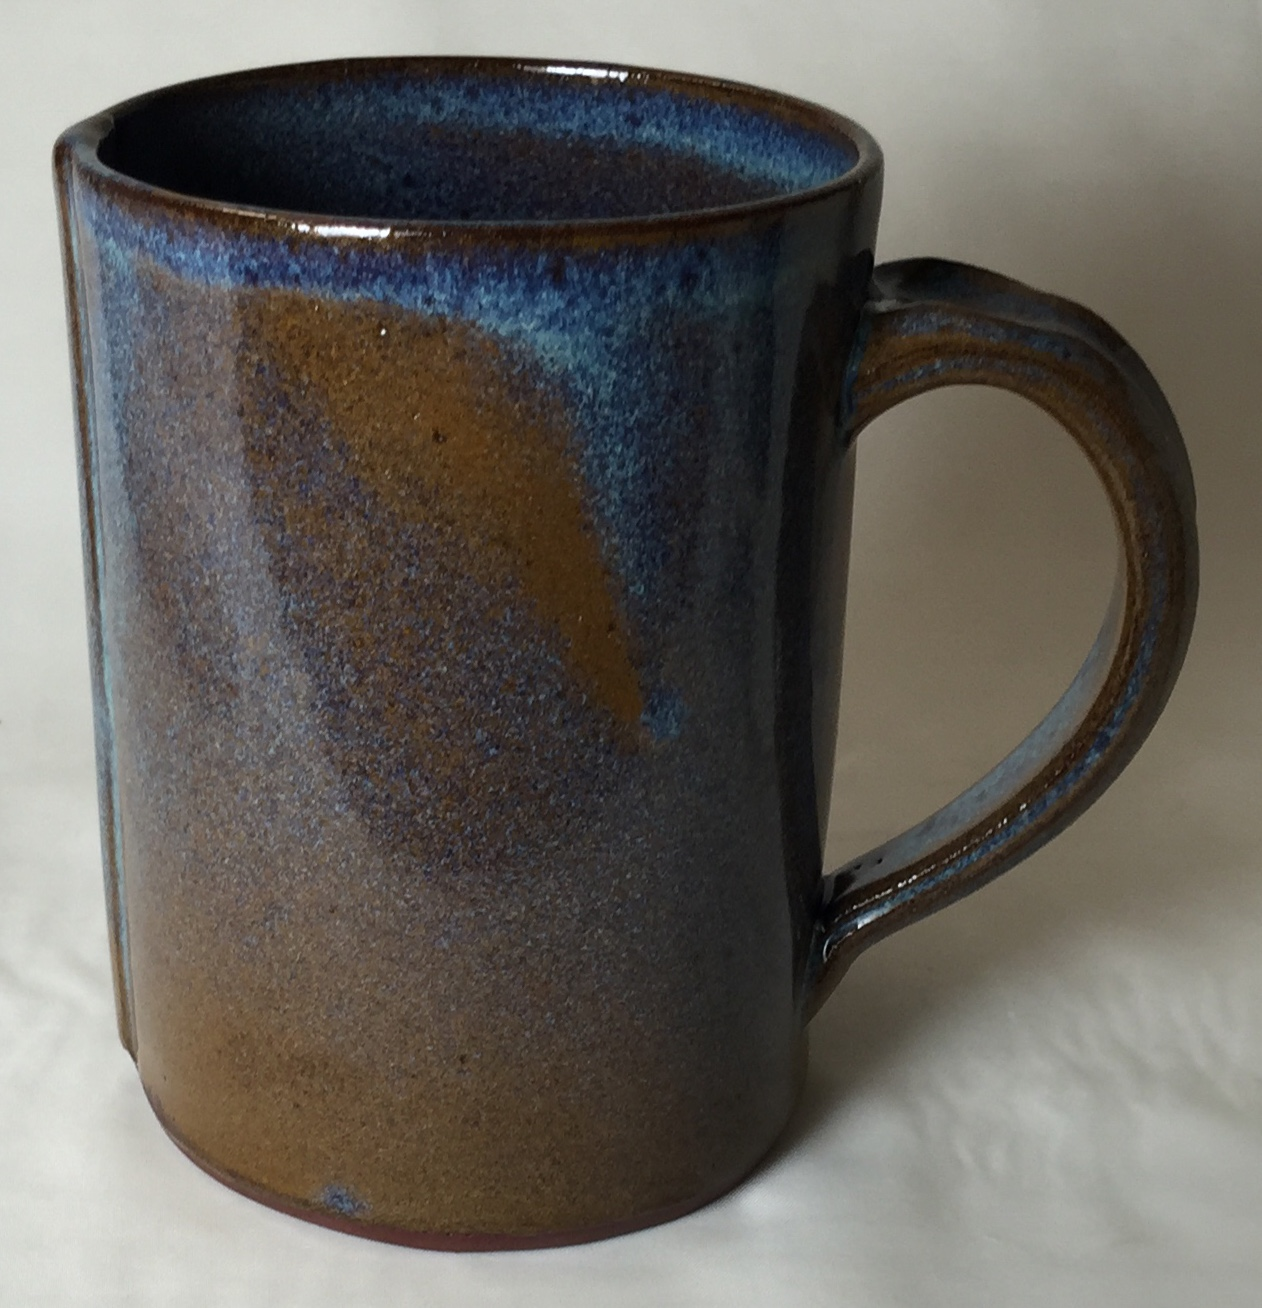 Alberta Slip Rutile blue glaze too thin on a dark body